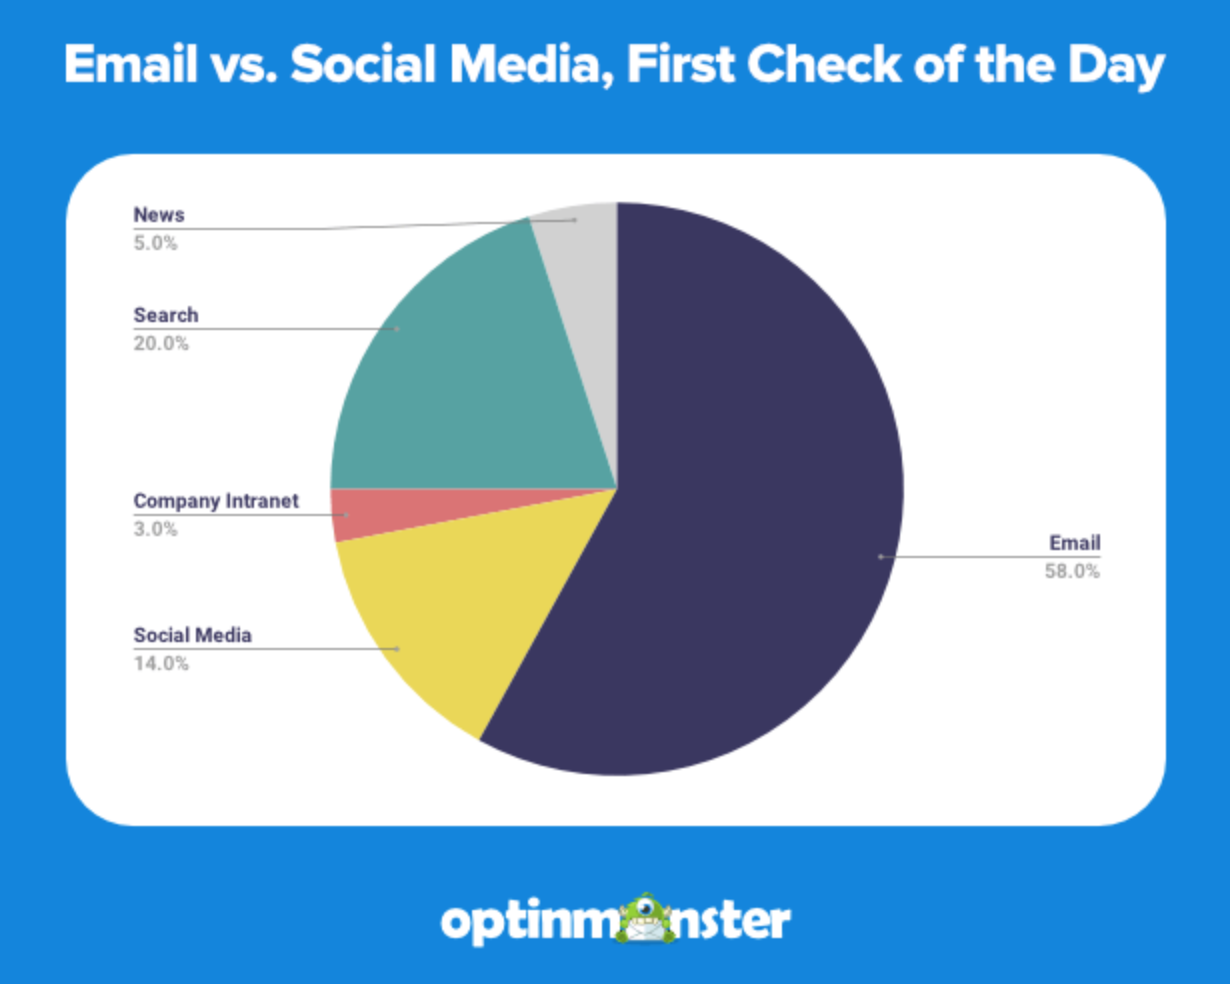 Email VS Social Media, First Check of the Day